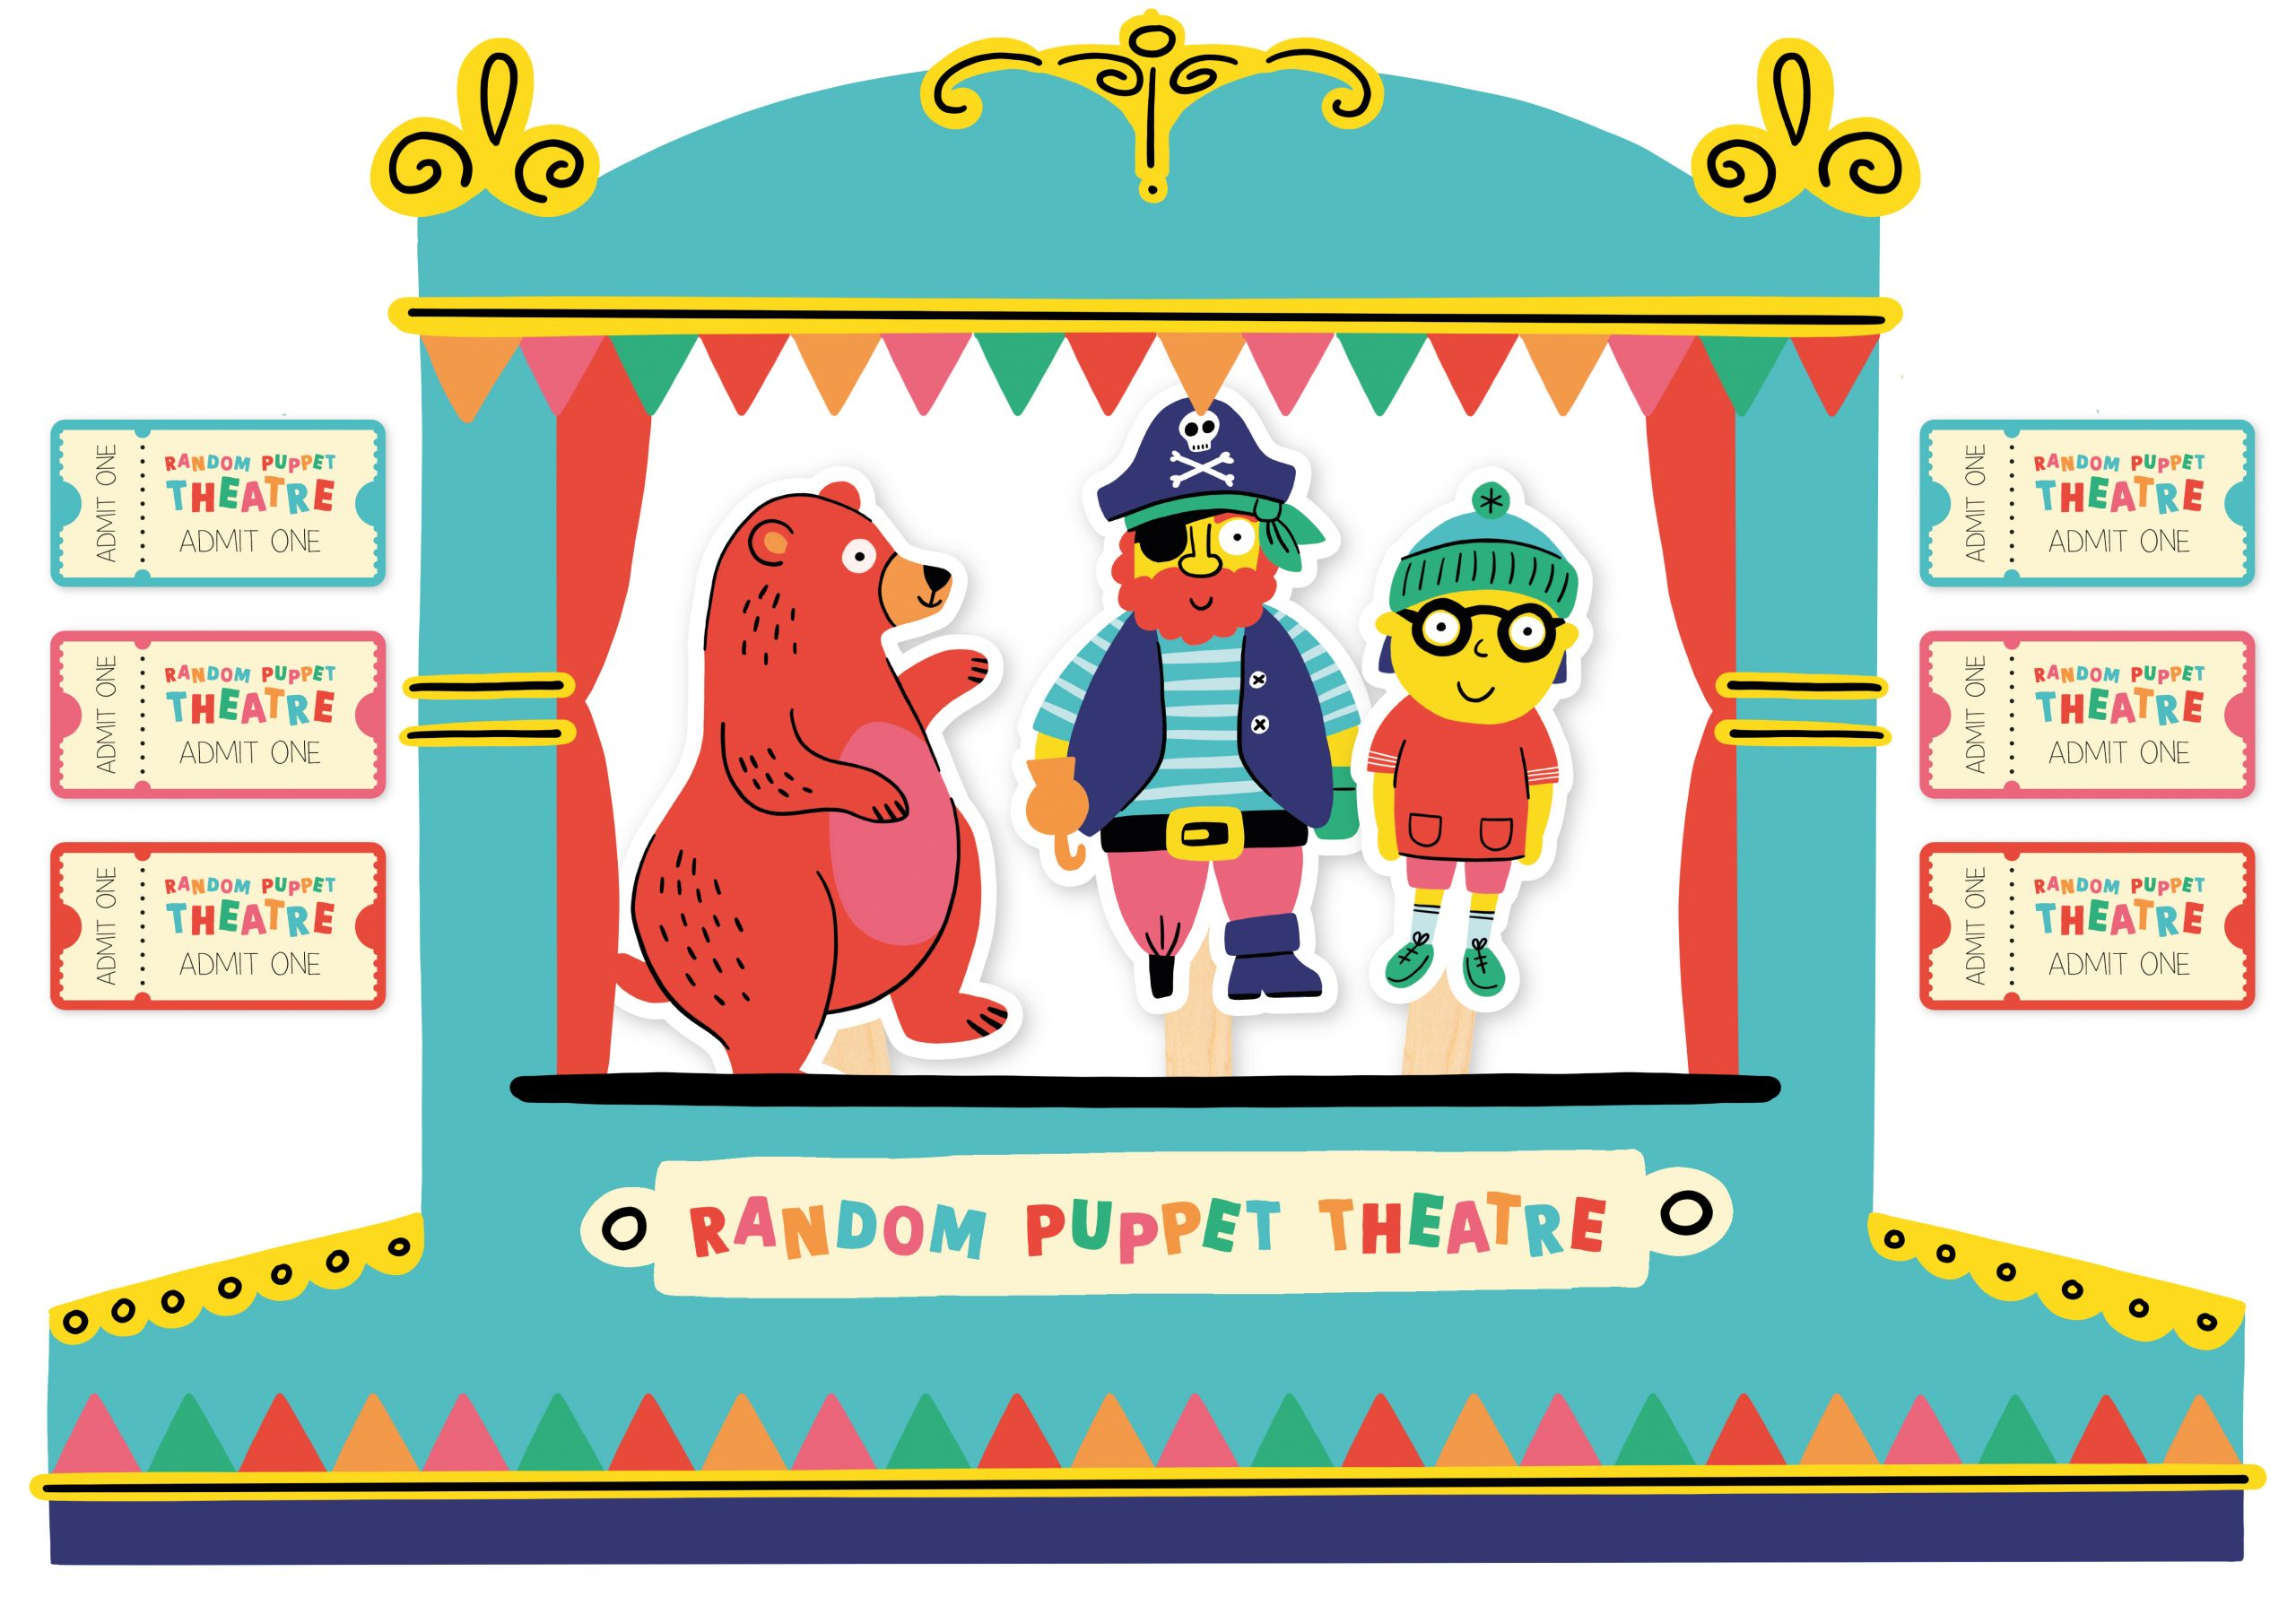 Puppet theatre illustration and design